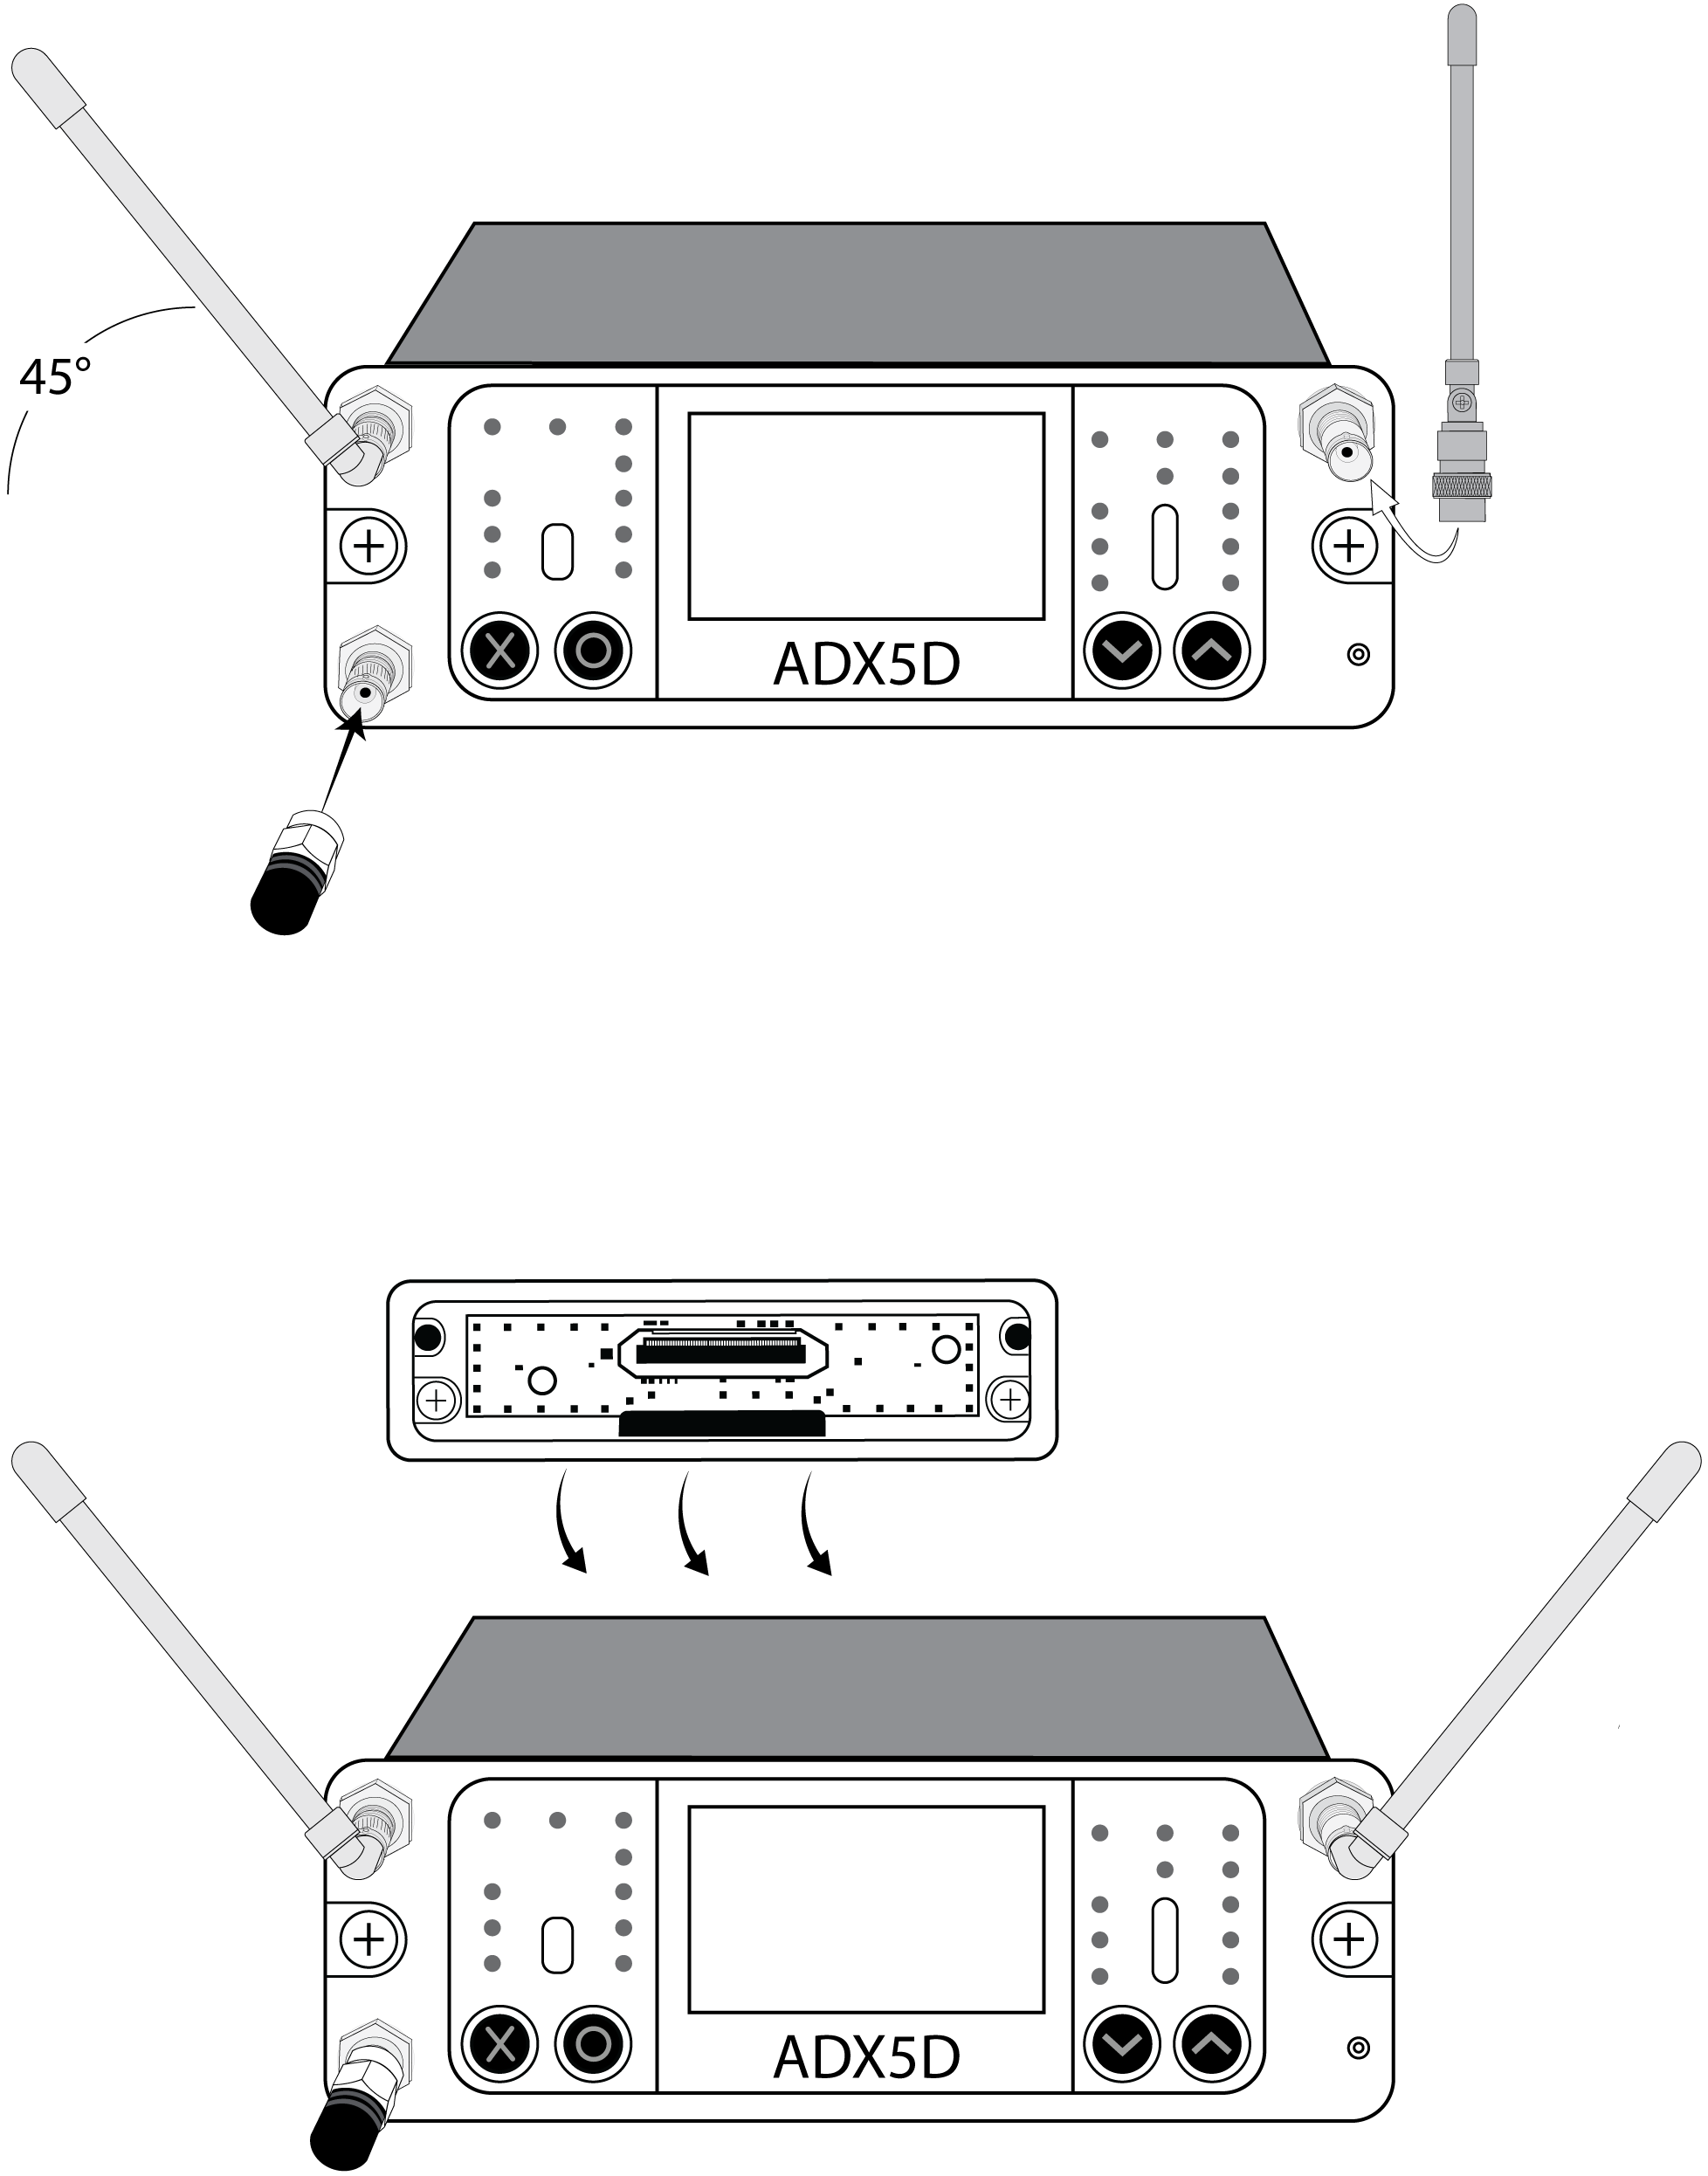 The antennas, backplate, and ShowLink antenna being attached to an ADX5D